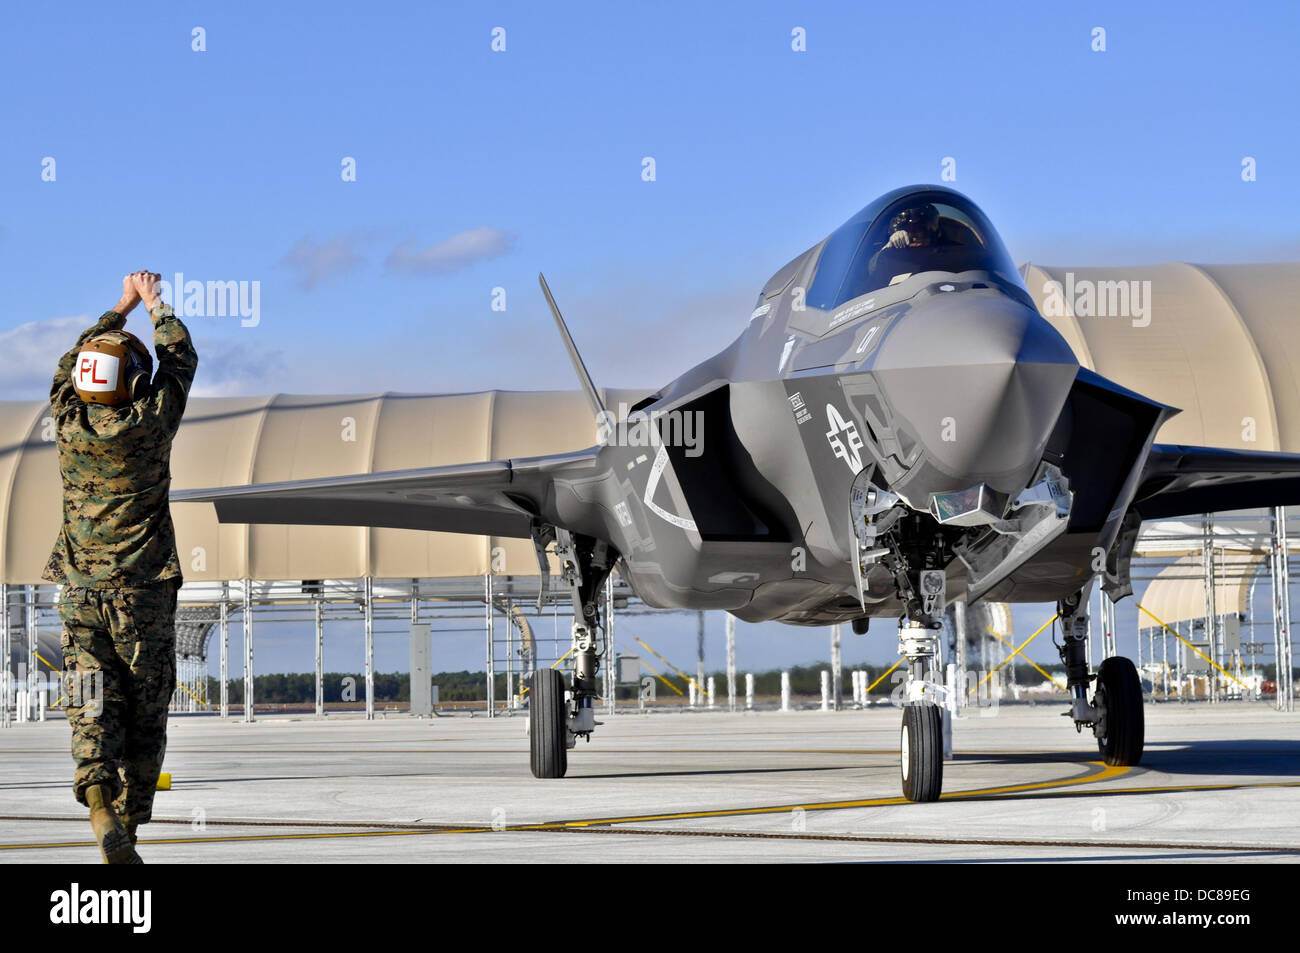 US Marine Gunnery Sgt. Matthew Smith marshals in the first Marine Corp F-35B Lightning II joint strike fighter to - Stock Image